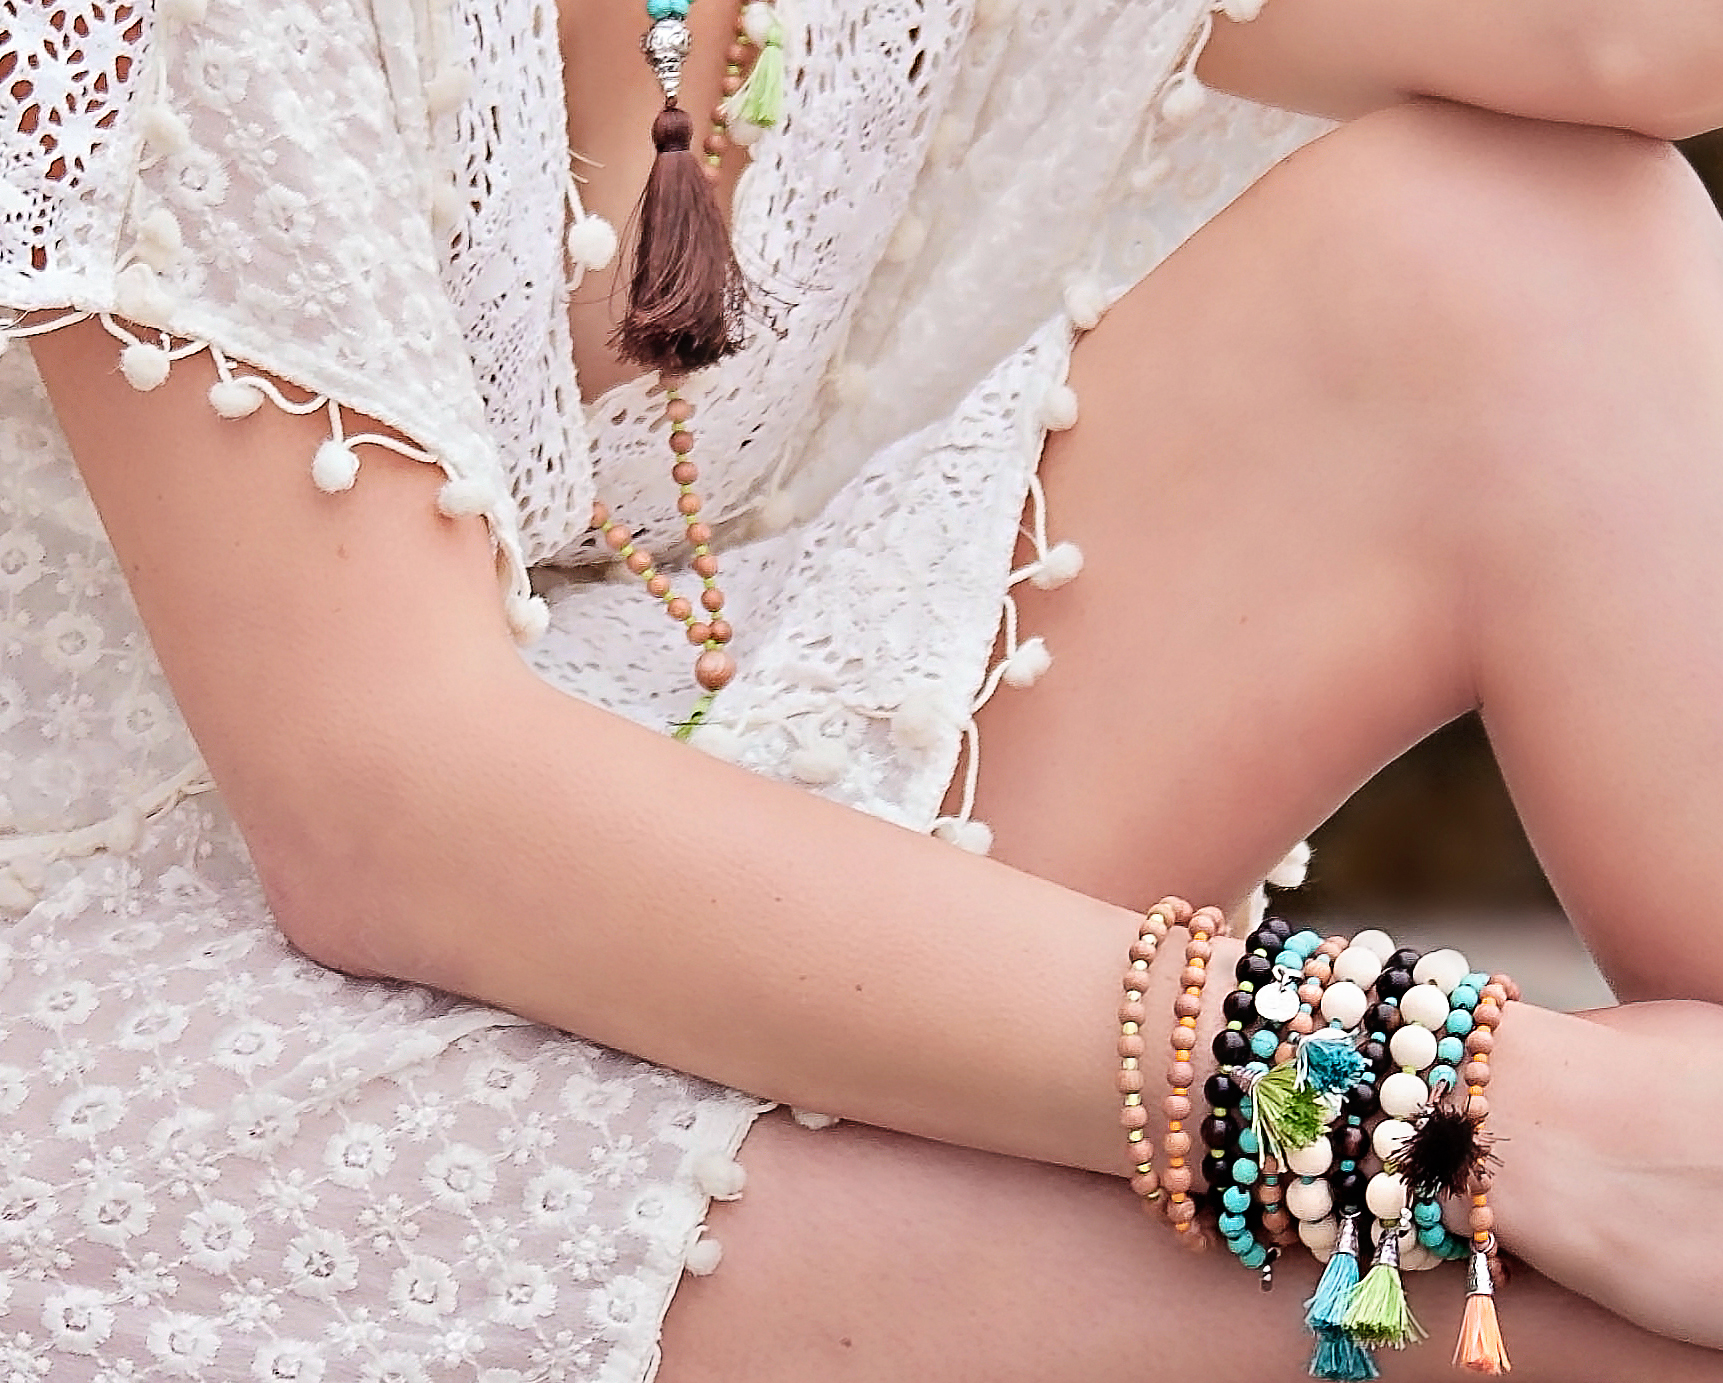 The Moda Mala summer collection is full of bright hues and beautiful, sustainable beads sourced from the Philippines.